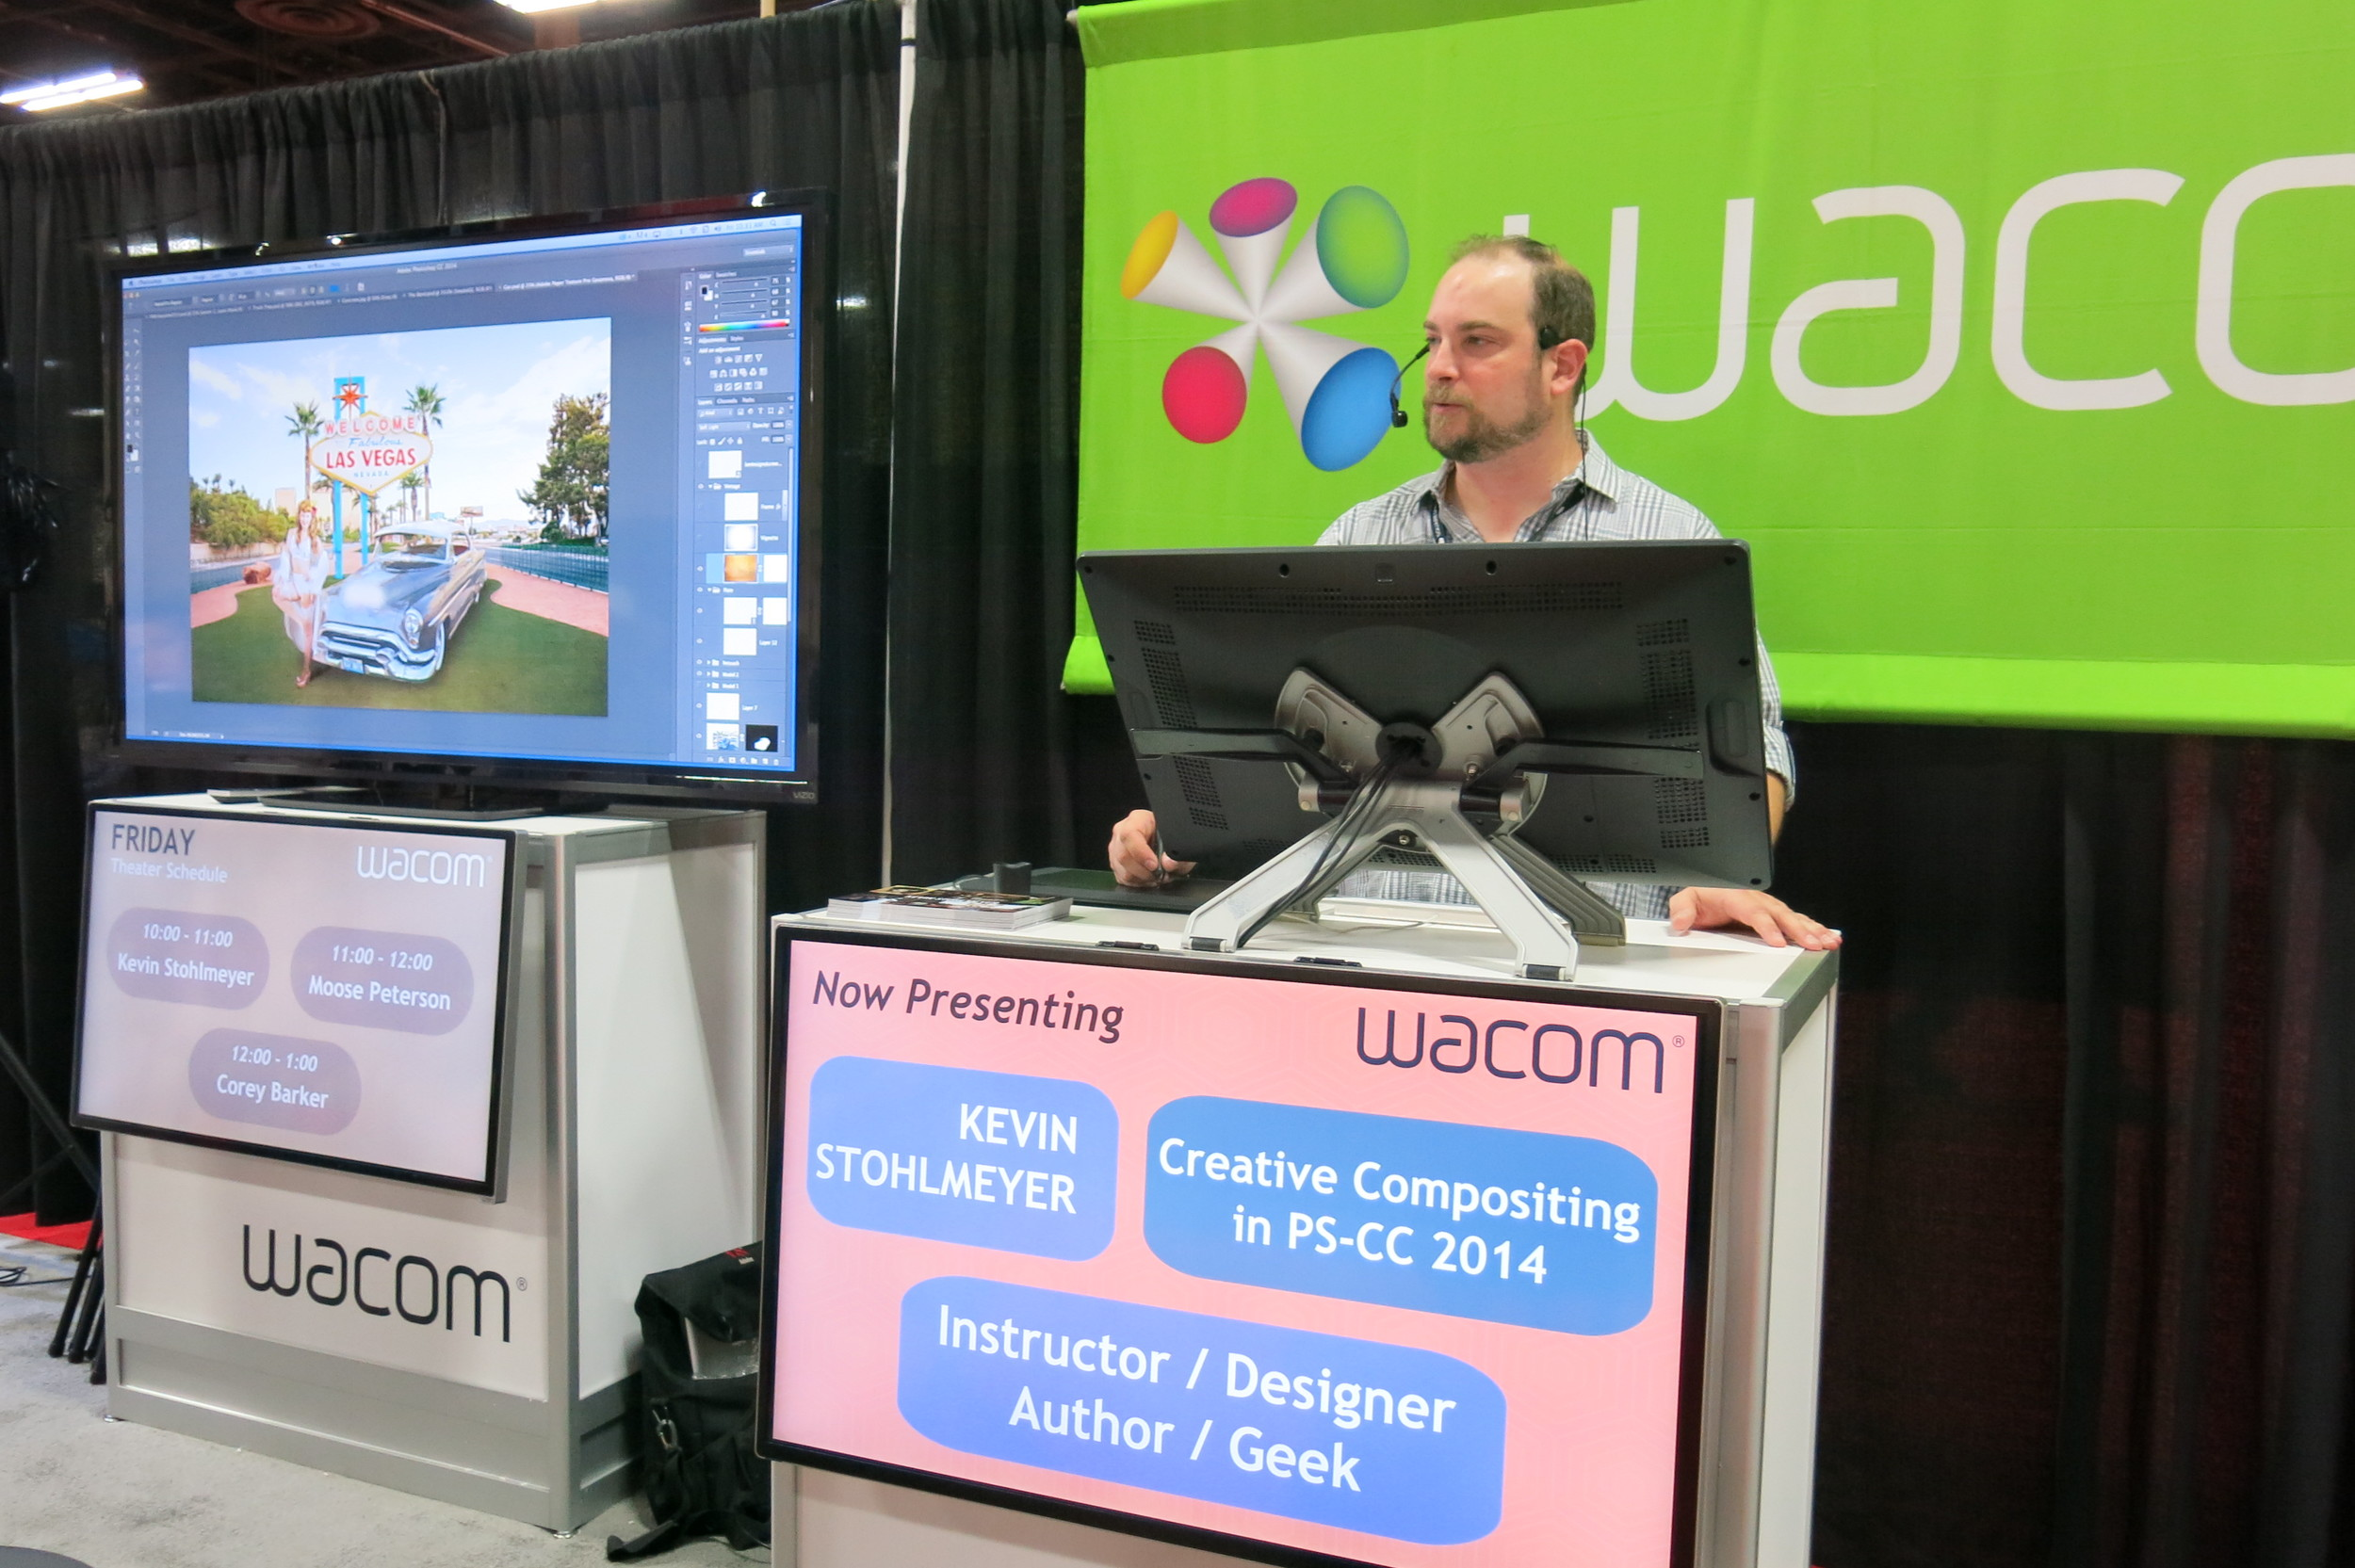 Kevin Stohlmeyer demos his PSW composite at the Wacom booth.